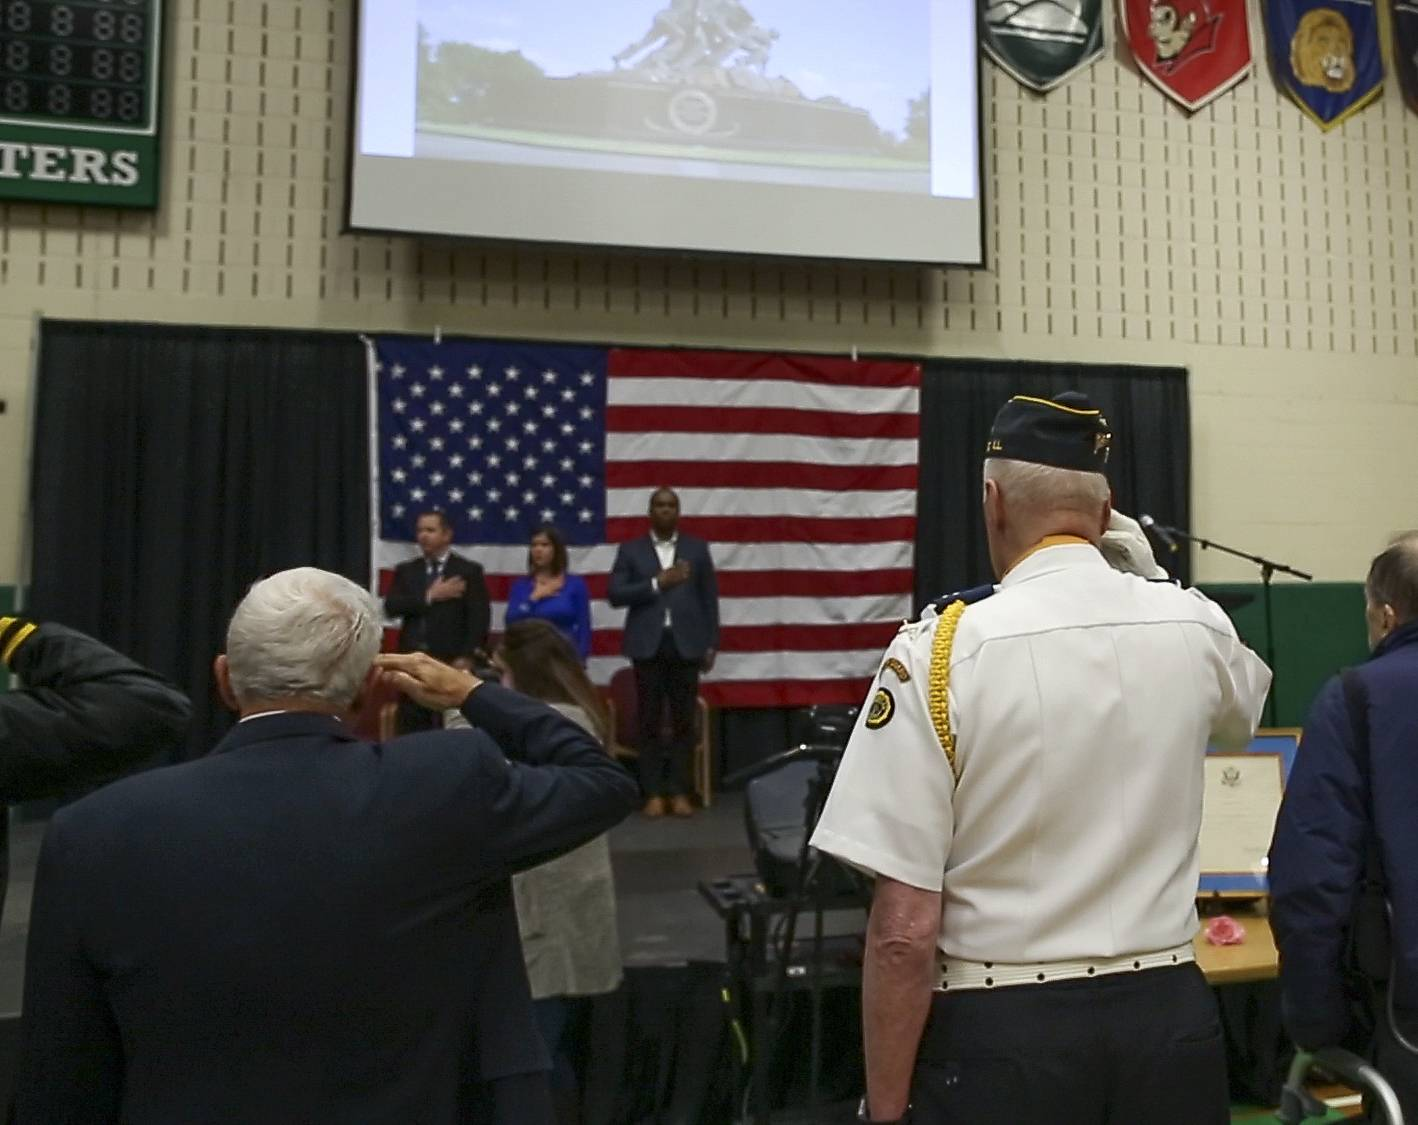 Veterans salute during the national anthem at the ceremony Friday at York High School.